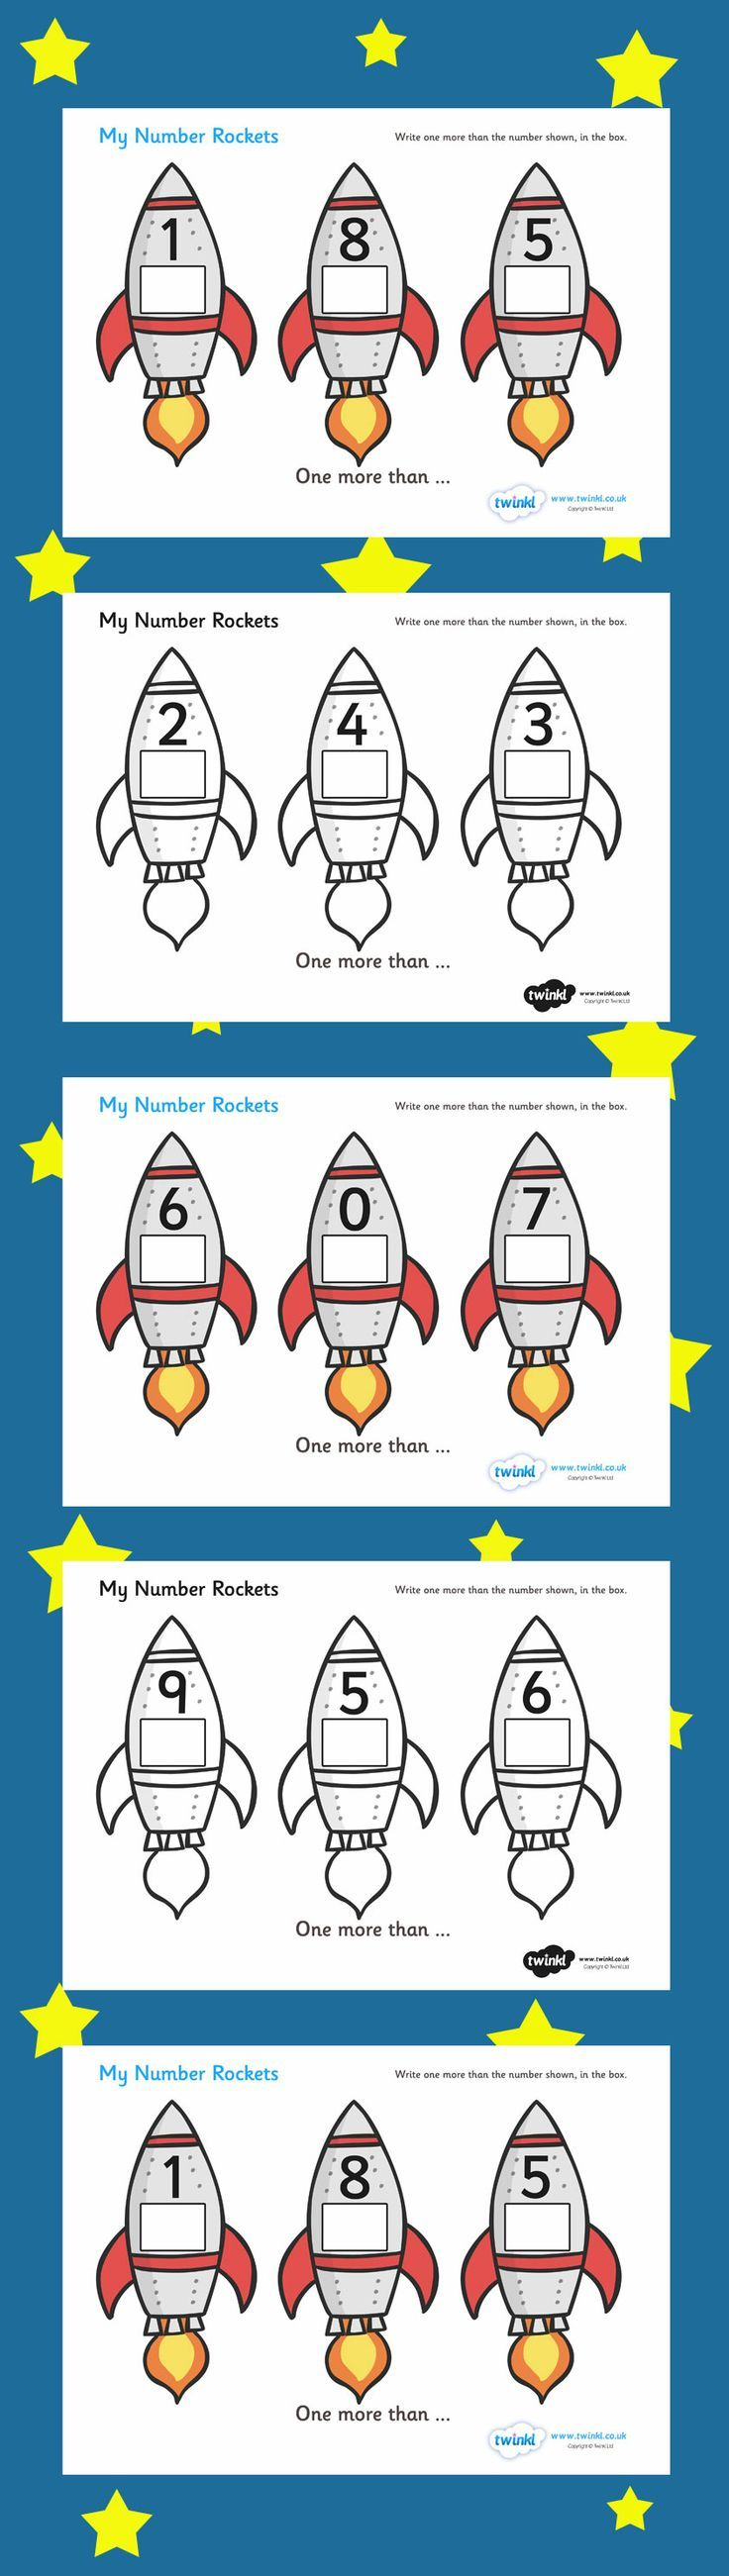 17 best images about thema ruimte kleuters    theme space planets preschool    astronaute de l